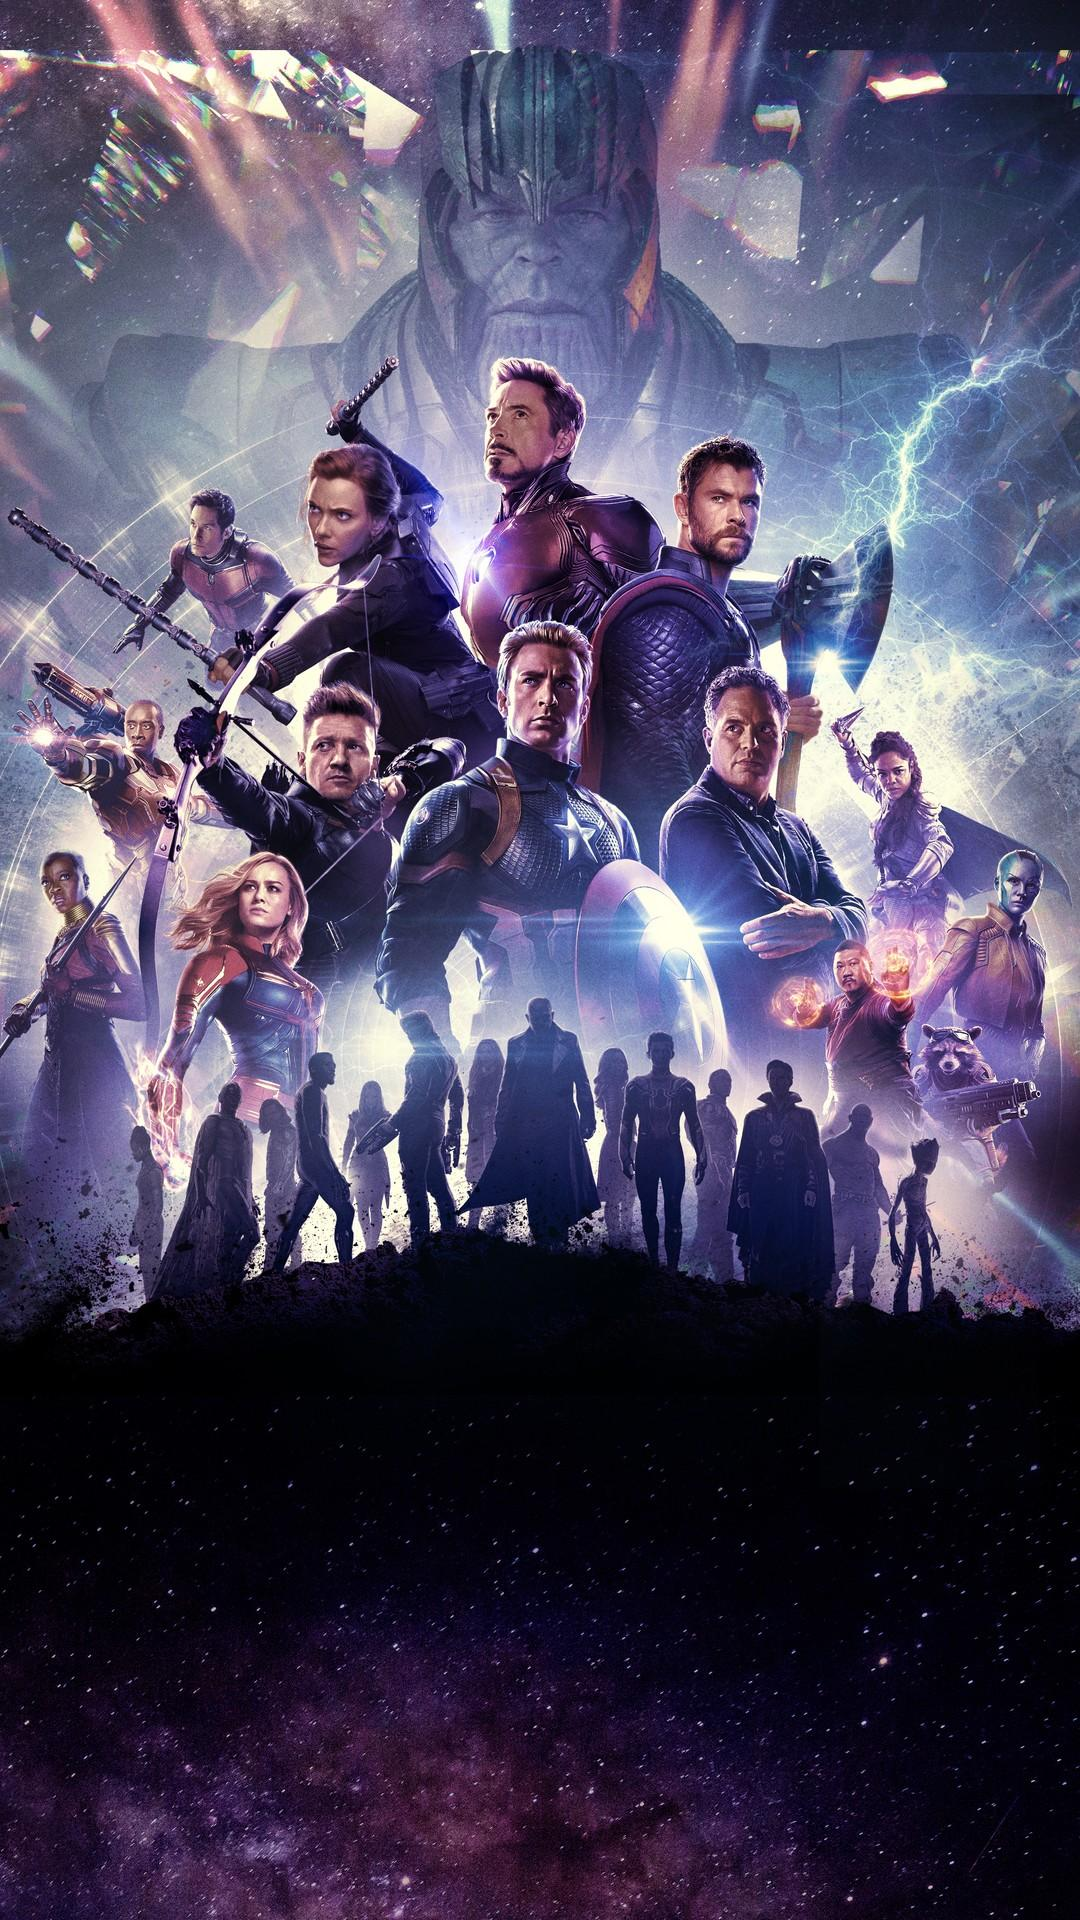 Avengers Android Wallpapers - Wallpaper Cave